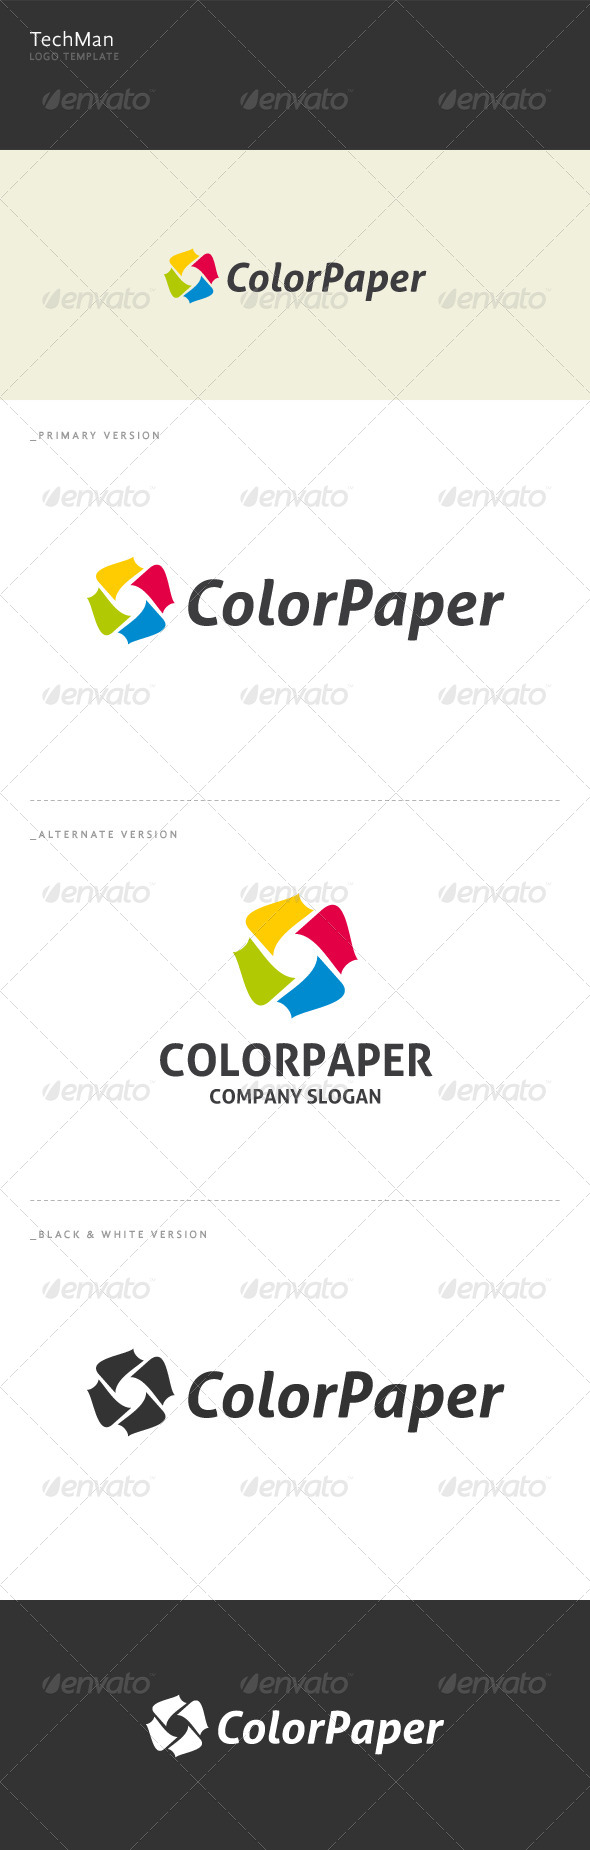 GraphicRiver Color Paper 5989612